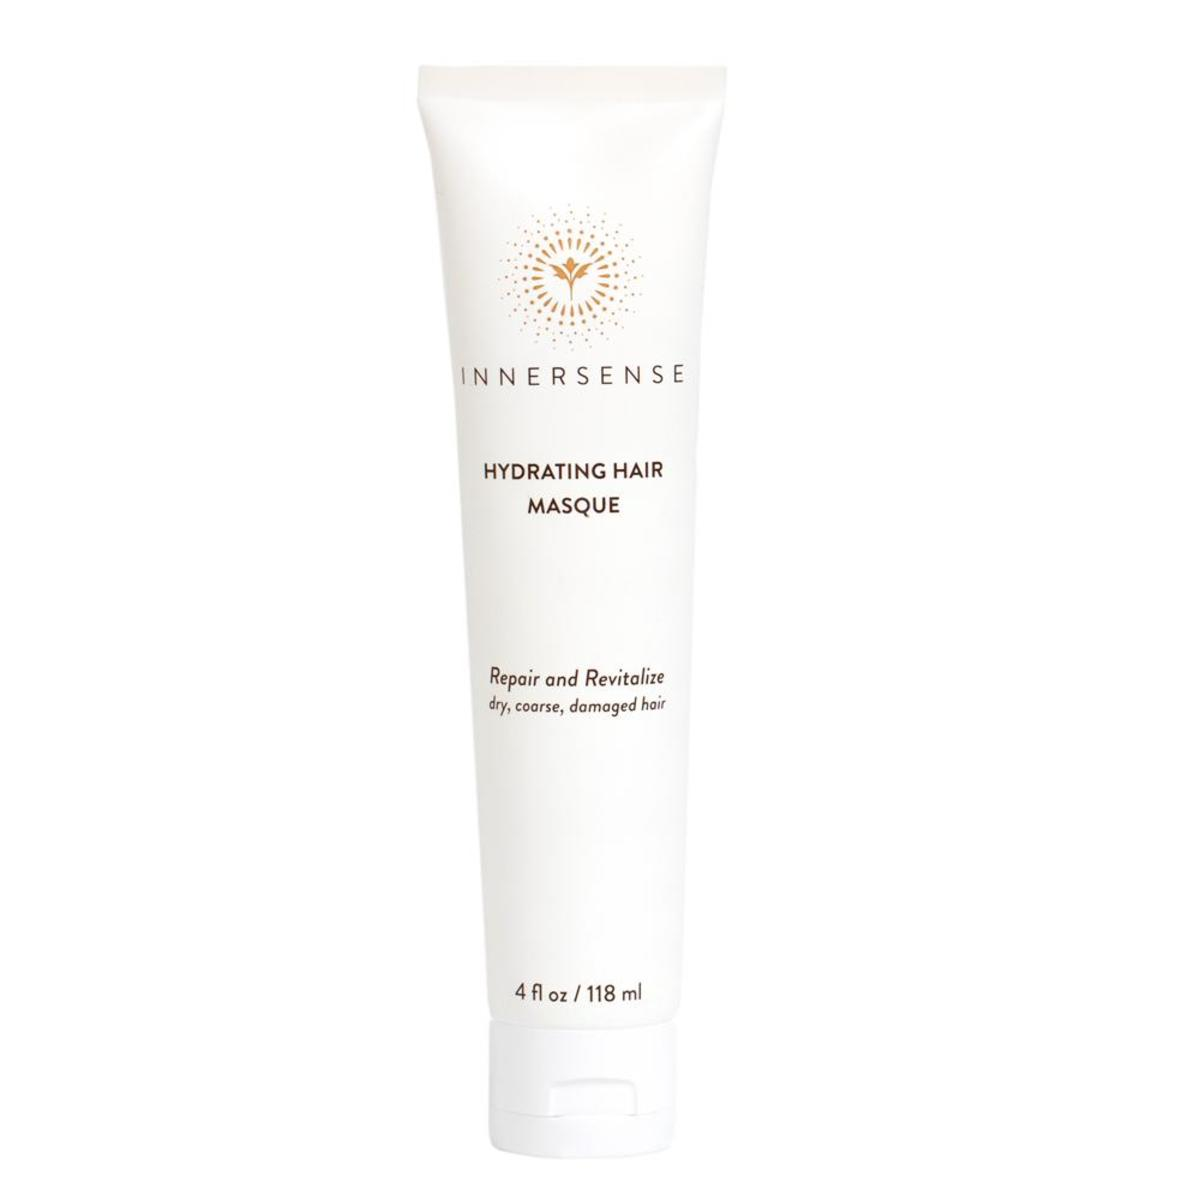 innersense-hydrating-hair-masque